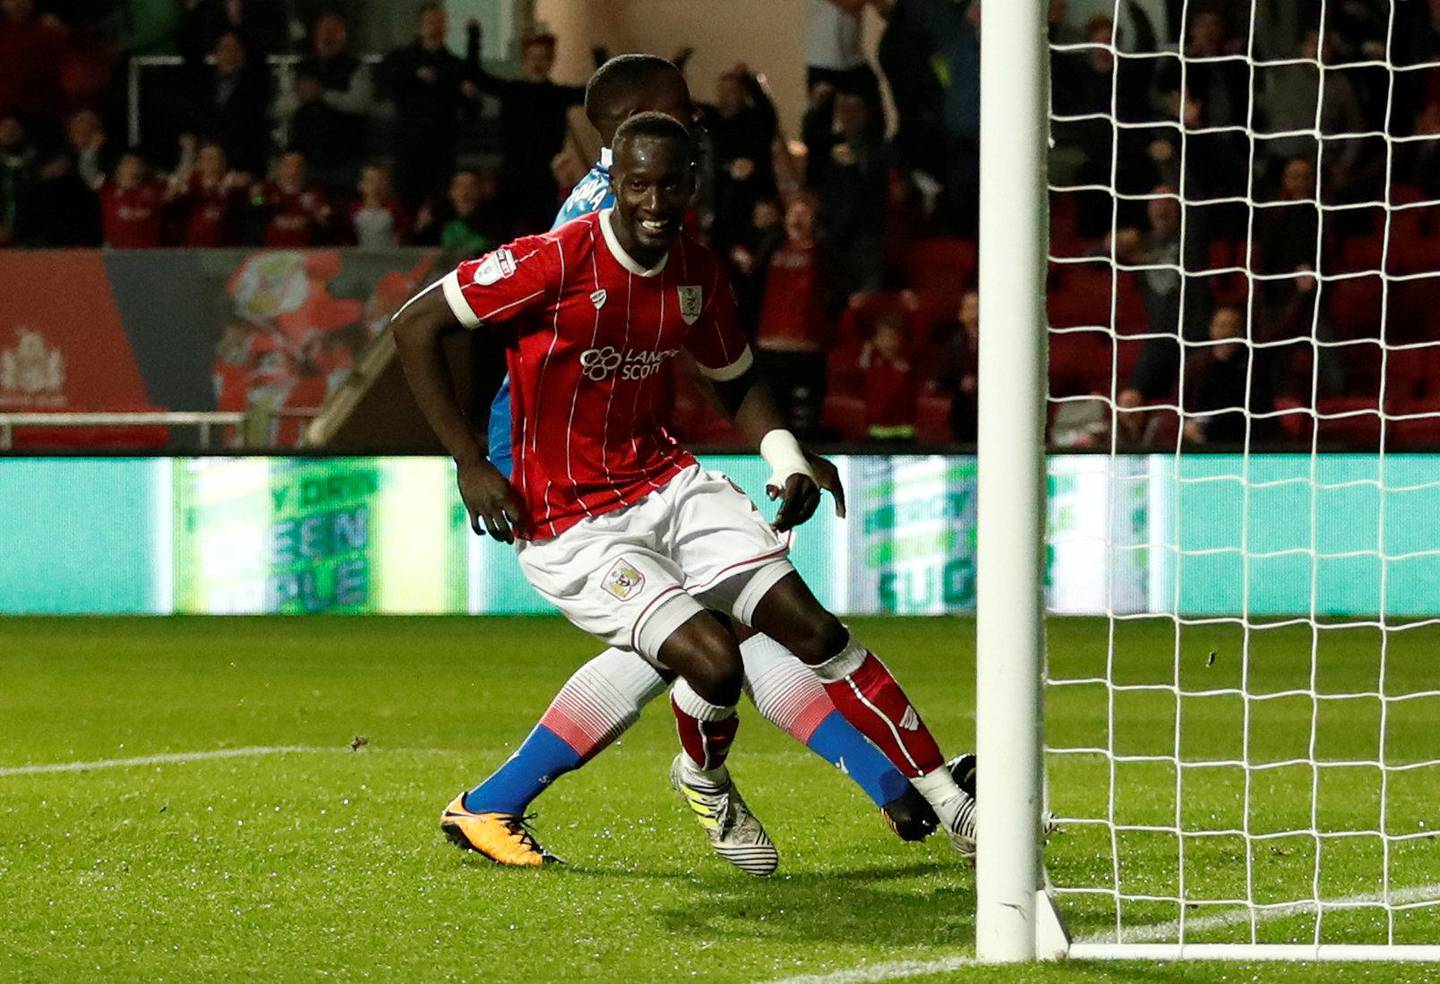 """Soccer Football - Carabao Cup Third Round - Bristol City vs Stoke City - Ashton Gate Stadium, Bristol, Britain - September 19, 2017  Bristol City's Famara Diedhiou scores their first goal    Action Images via Reuters/Andrew Boyers   EDITORIAL USE ONLY. No use with unauthorized audio, video, data, fixture lists, club/league logos or """"live"""" services. Online in-match use limited to 75 images, no video emulation. No use in betting, games or single club/league/player publications. Please contact your account representative for further details."""